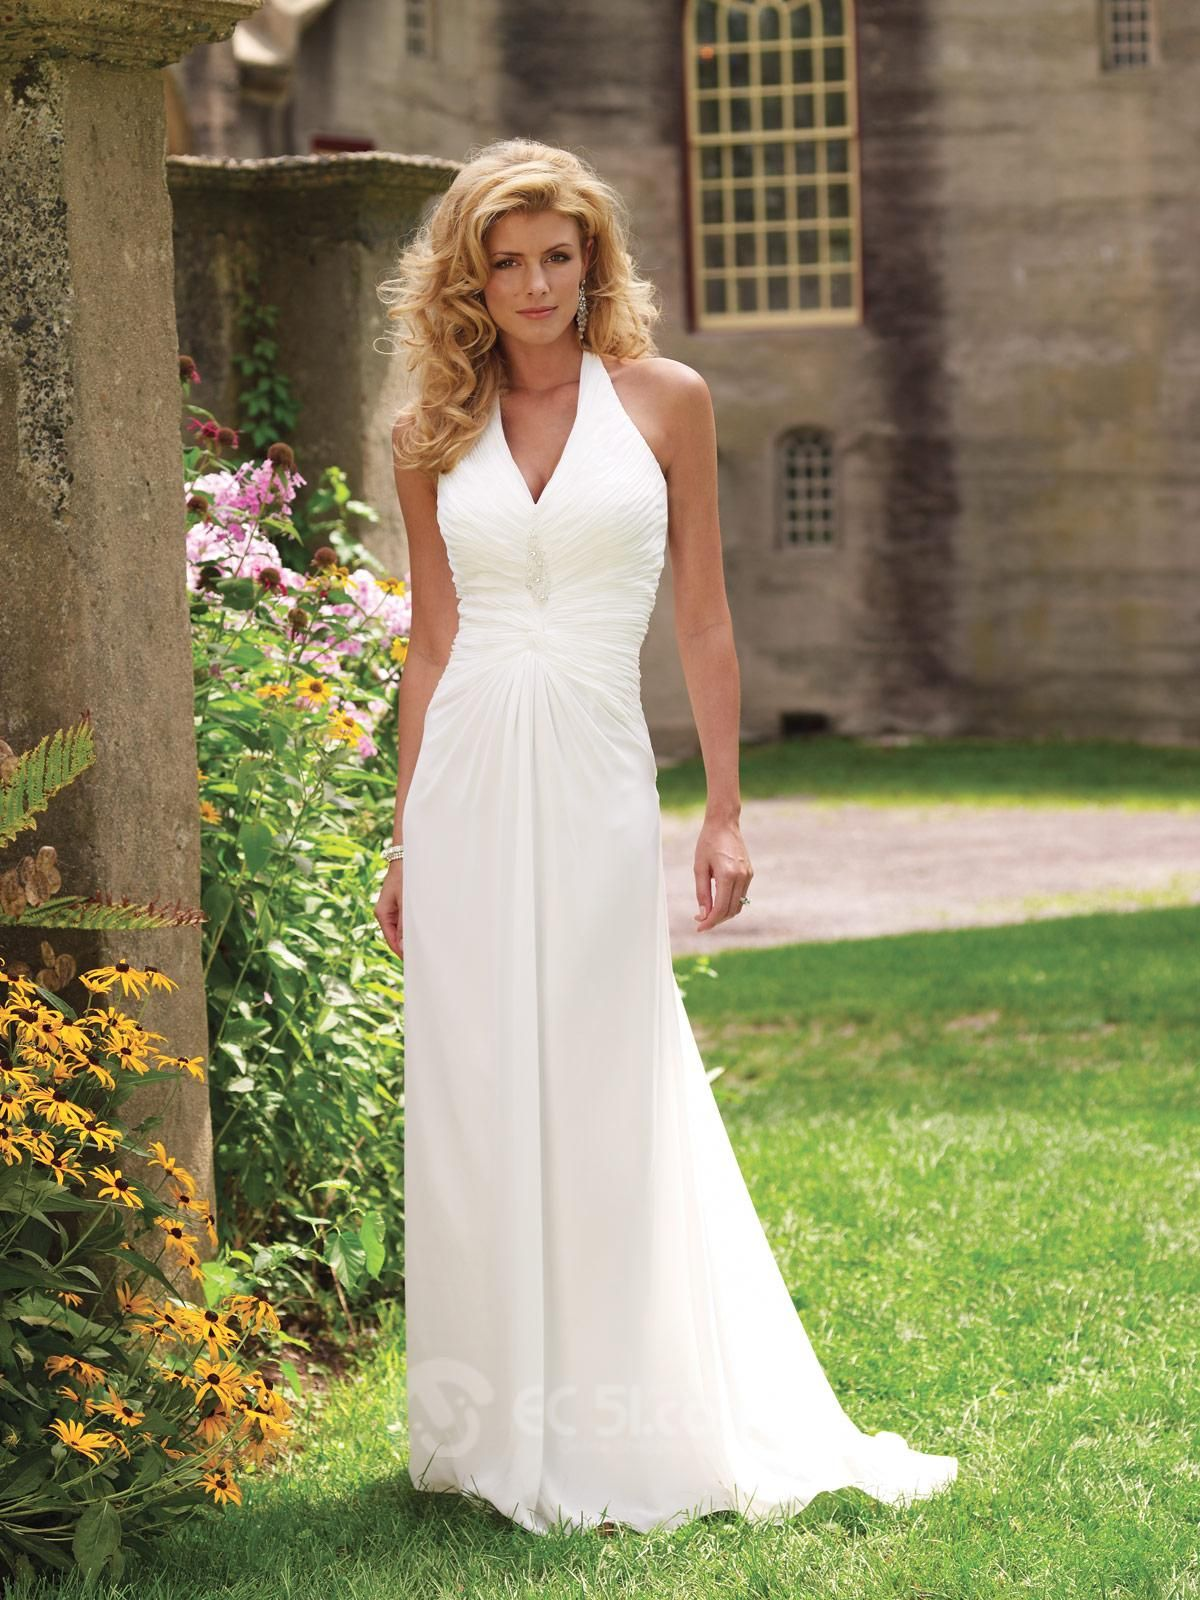 Wedding dress vneck long hive elastic cloth beach wedding dresses